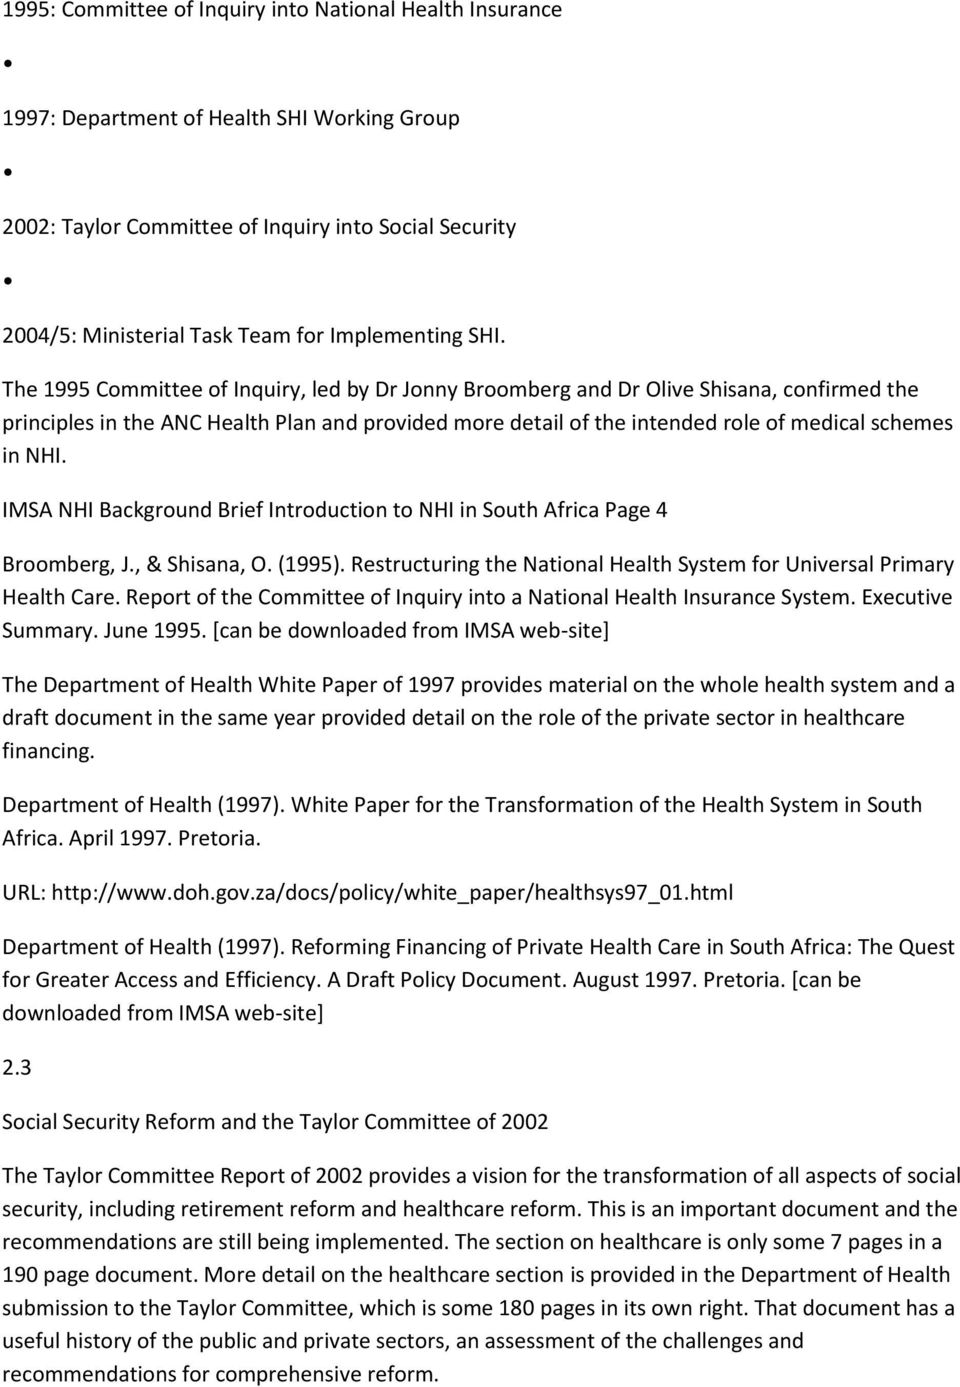 The 1995 Committee of Inquiry, led by Dr Jonny Broomberg and Dr Olive Shisana, confirmed the principles in the ANC Health Plan and provided more detail of the intended role of medical schemes in NHI.